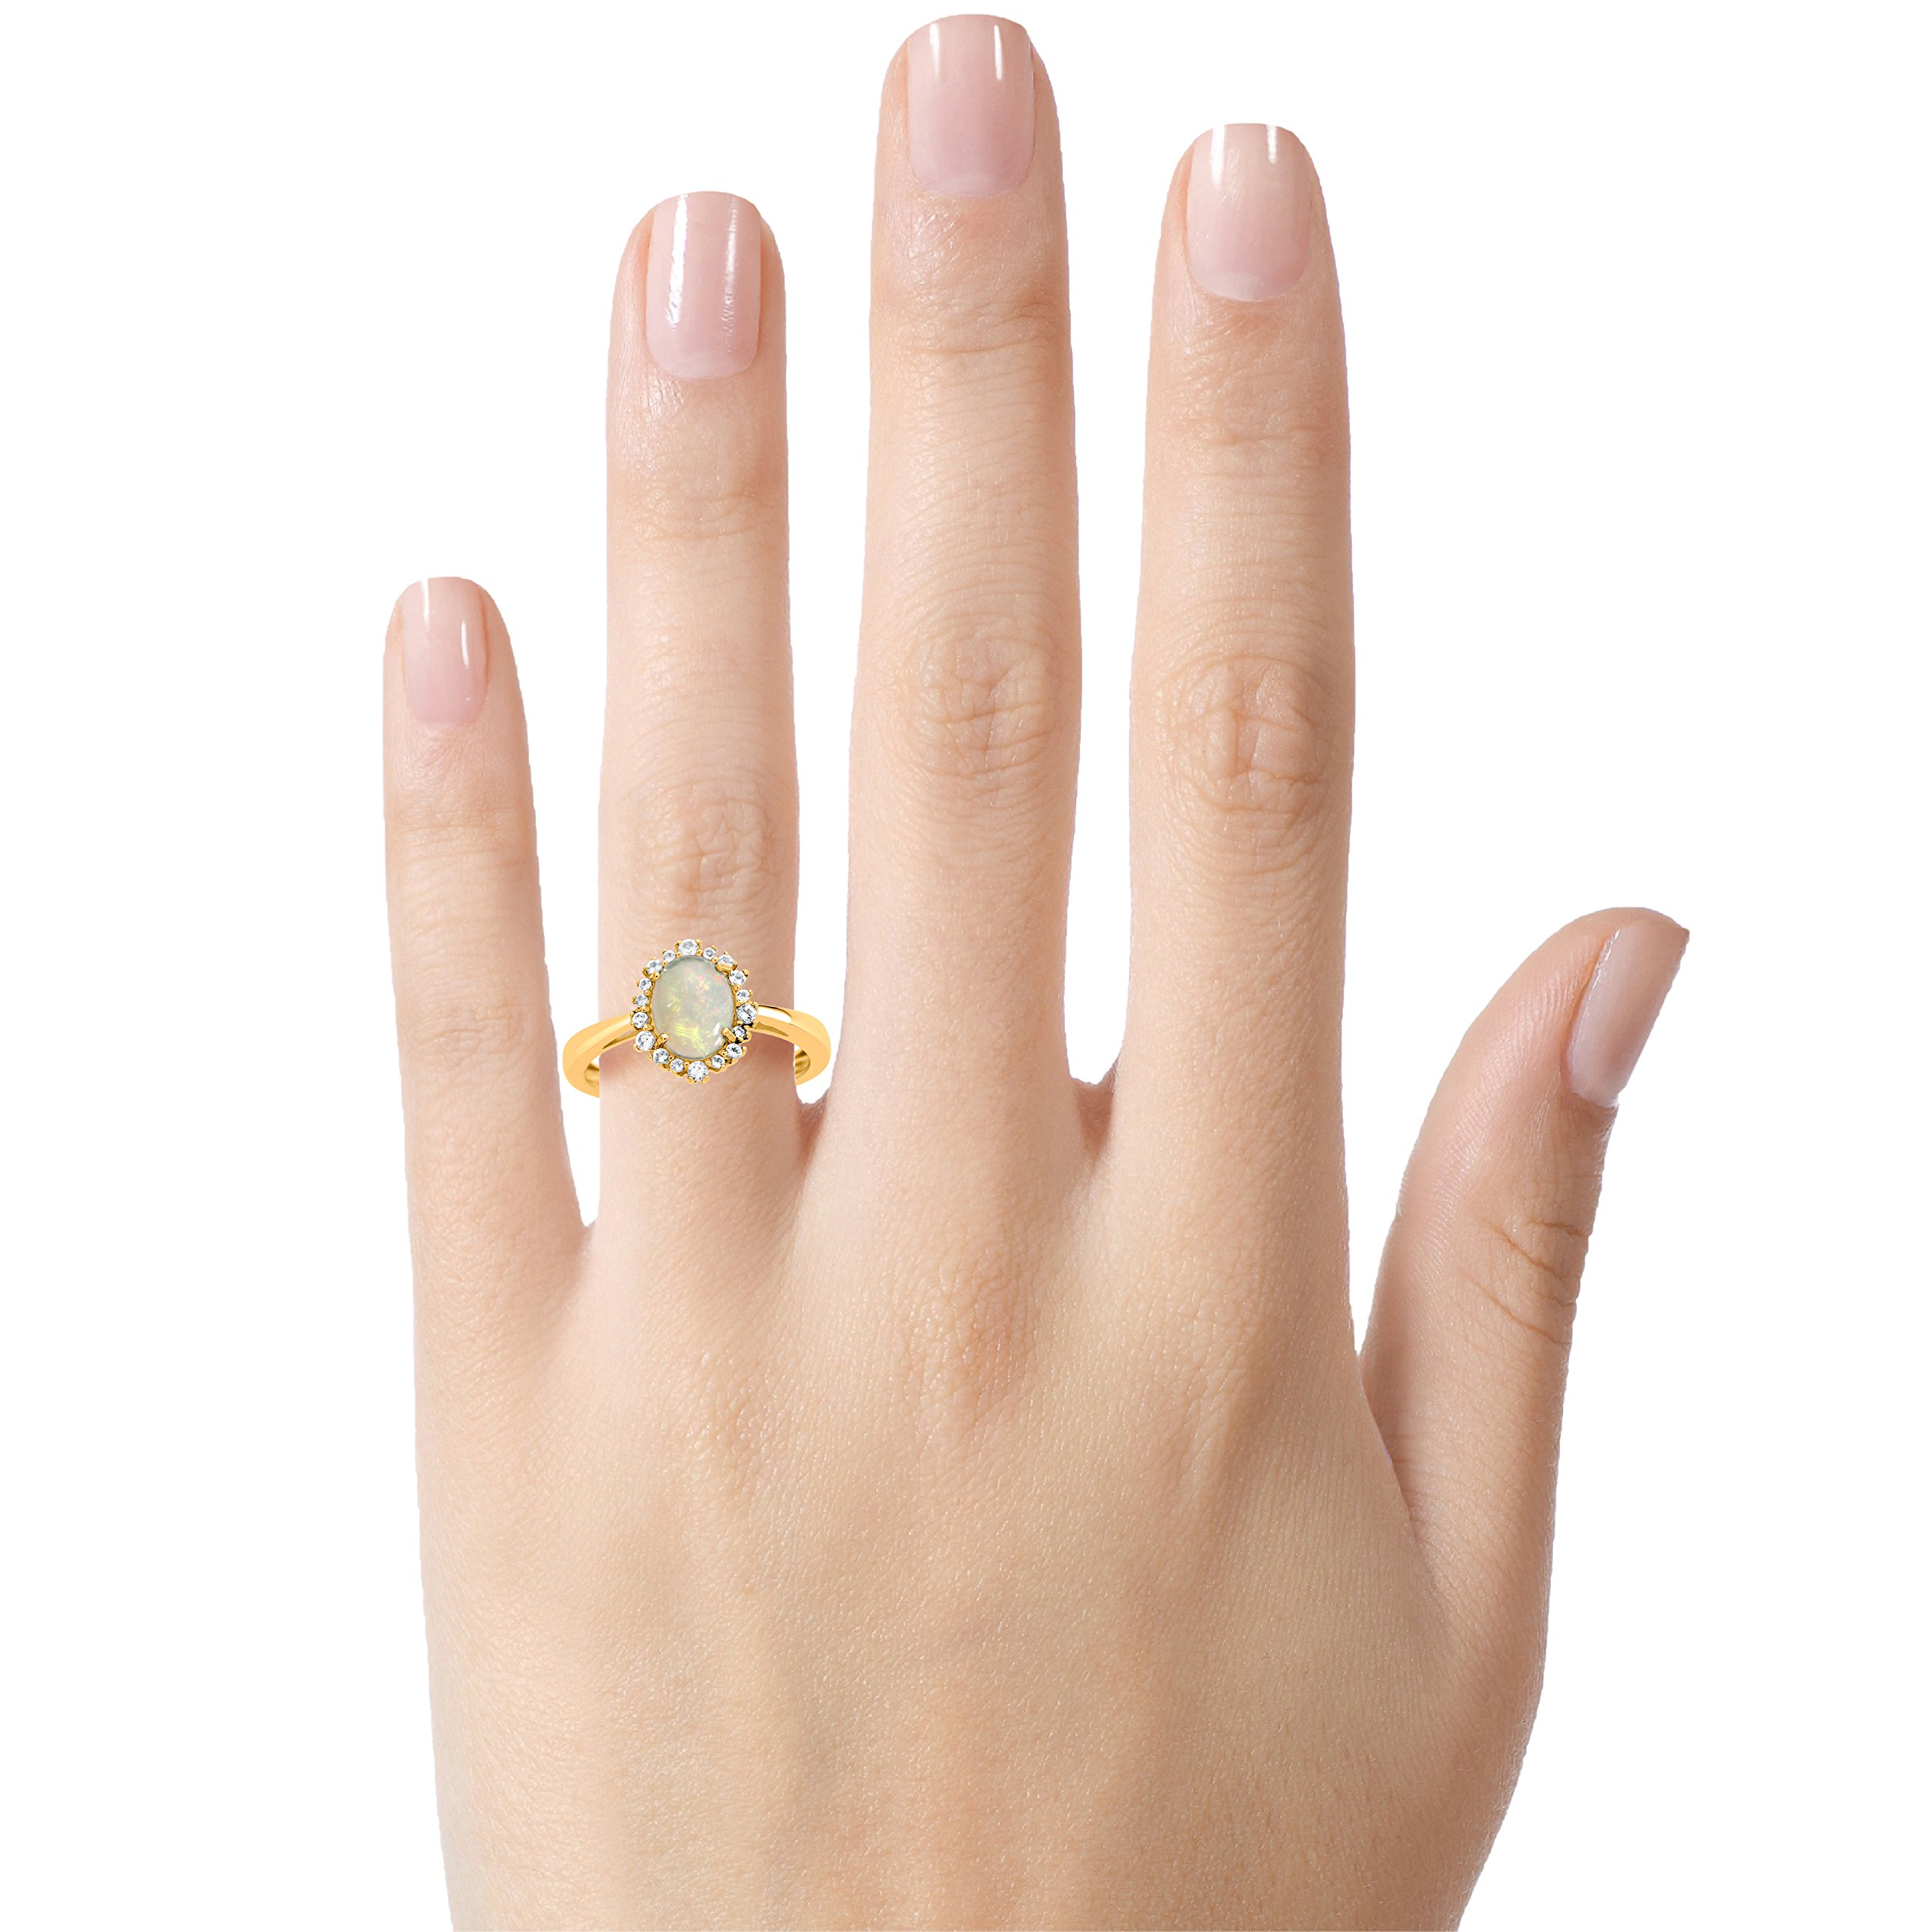 Finejewelers 10k Yellow Gold 8x6mm Oval Opal with White Topaz accent stones Halo Ring Size 5.5 by Finejewelers (Image #1)